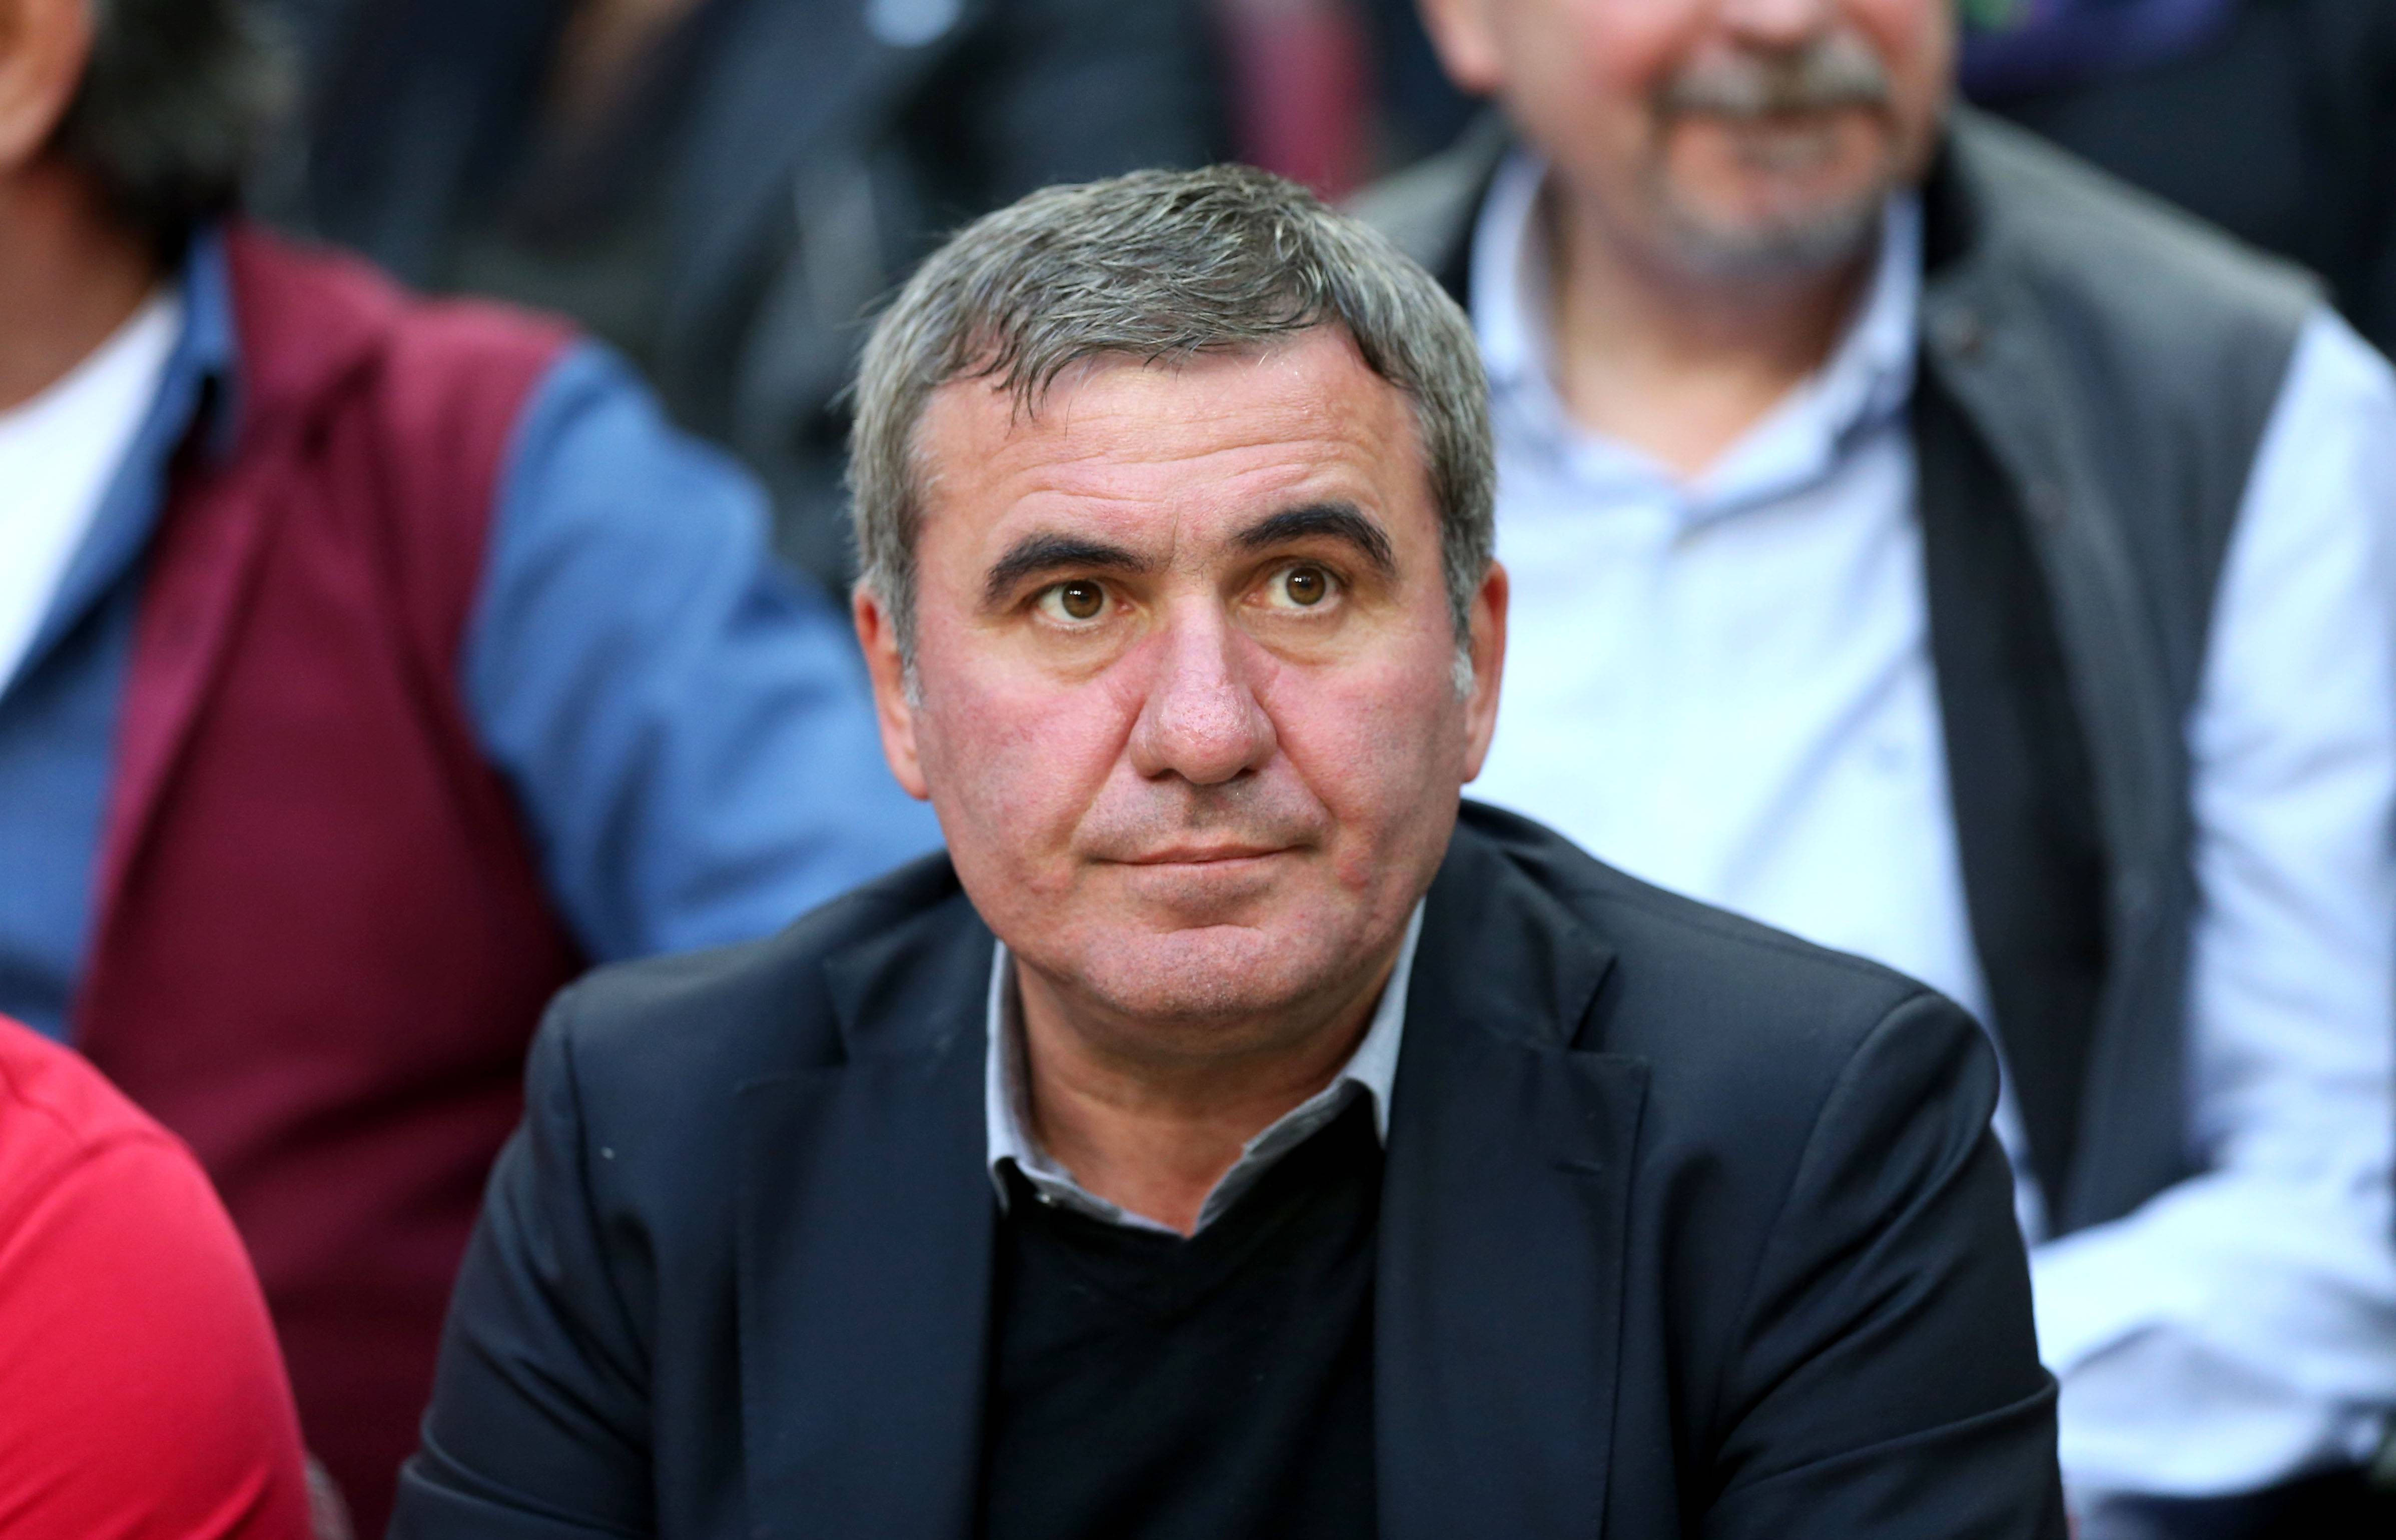 Romania legend Gheorghe Hagi turns down lucrative offer to coach Saudi Arabia